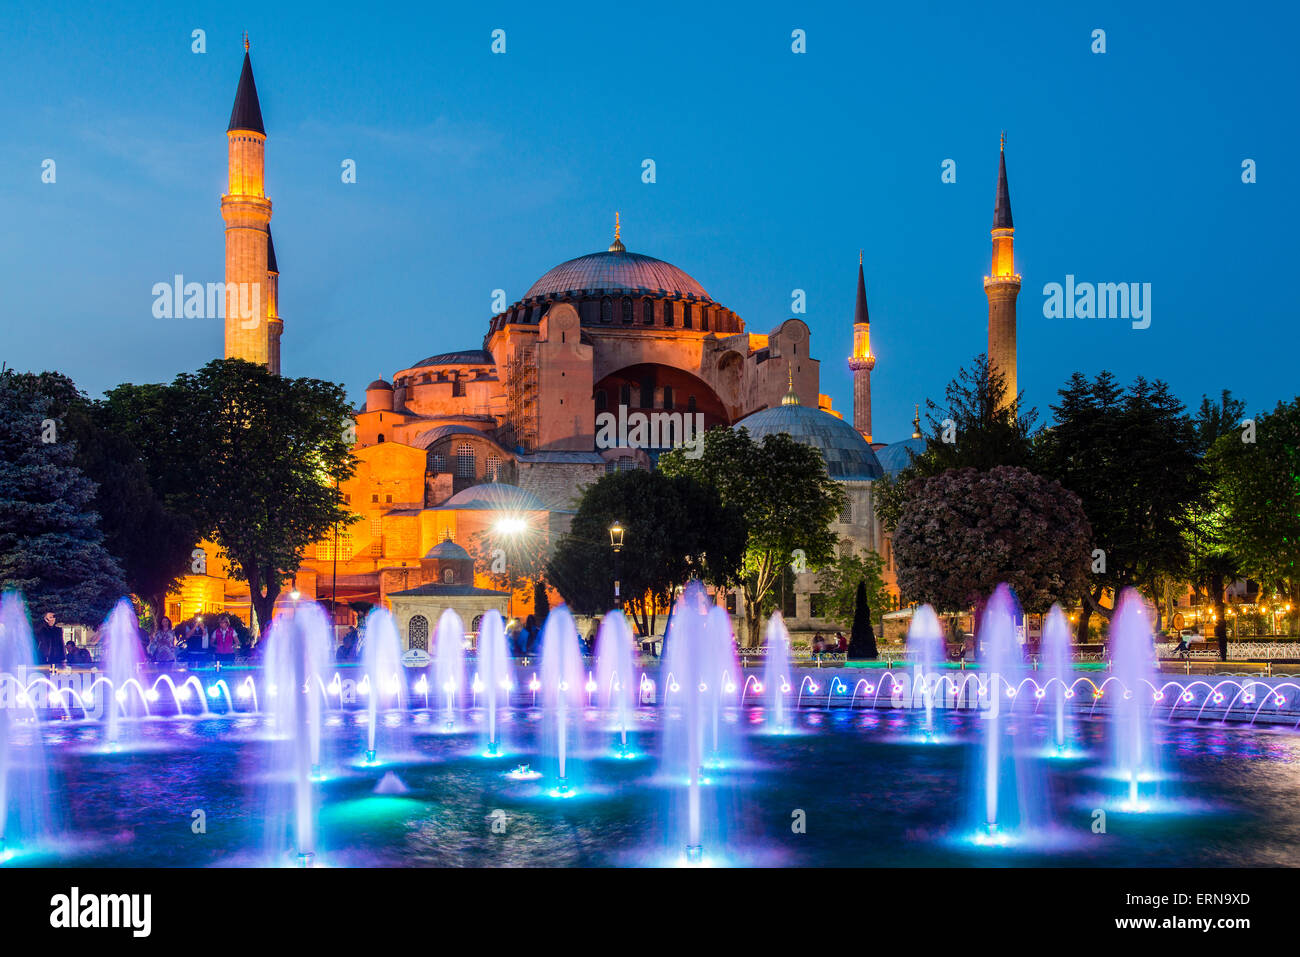 Night view of fountain light show with Hagia Sophia behind, Sultanahmet, Istanbul, Turkey - Stock Image